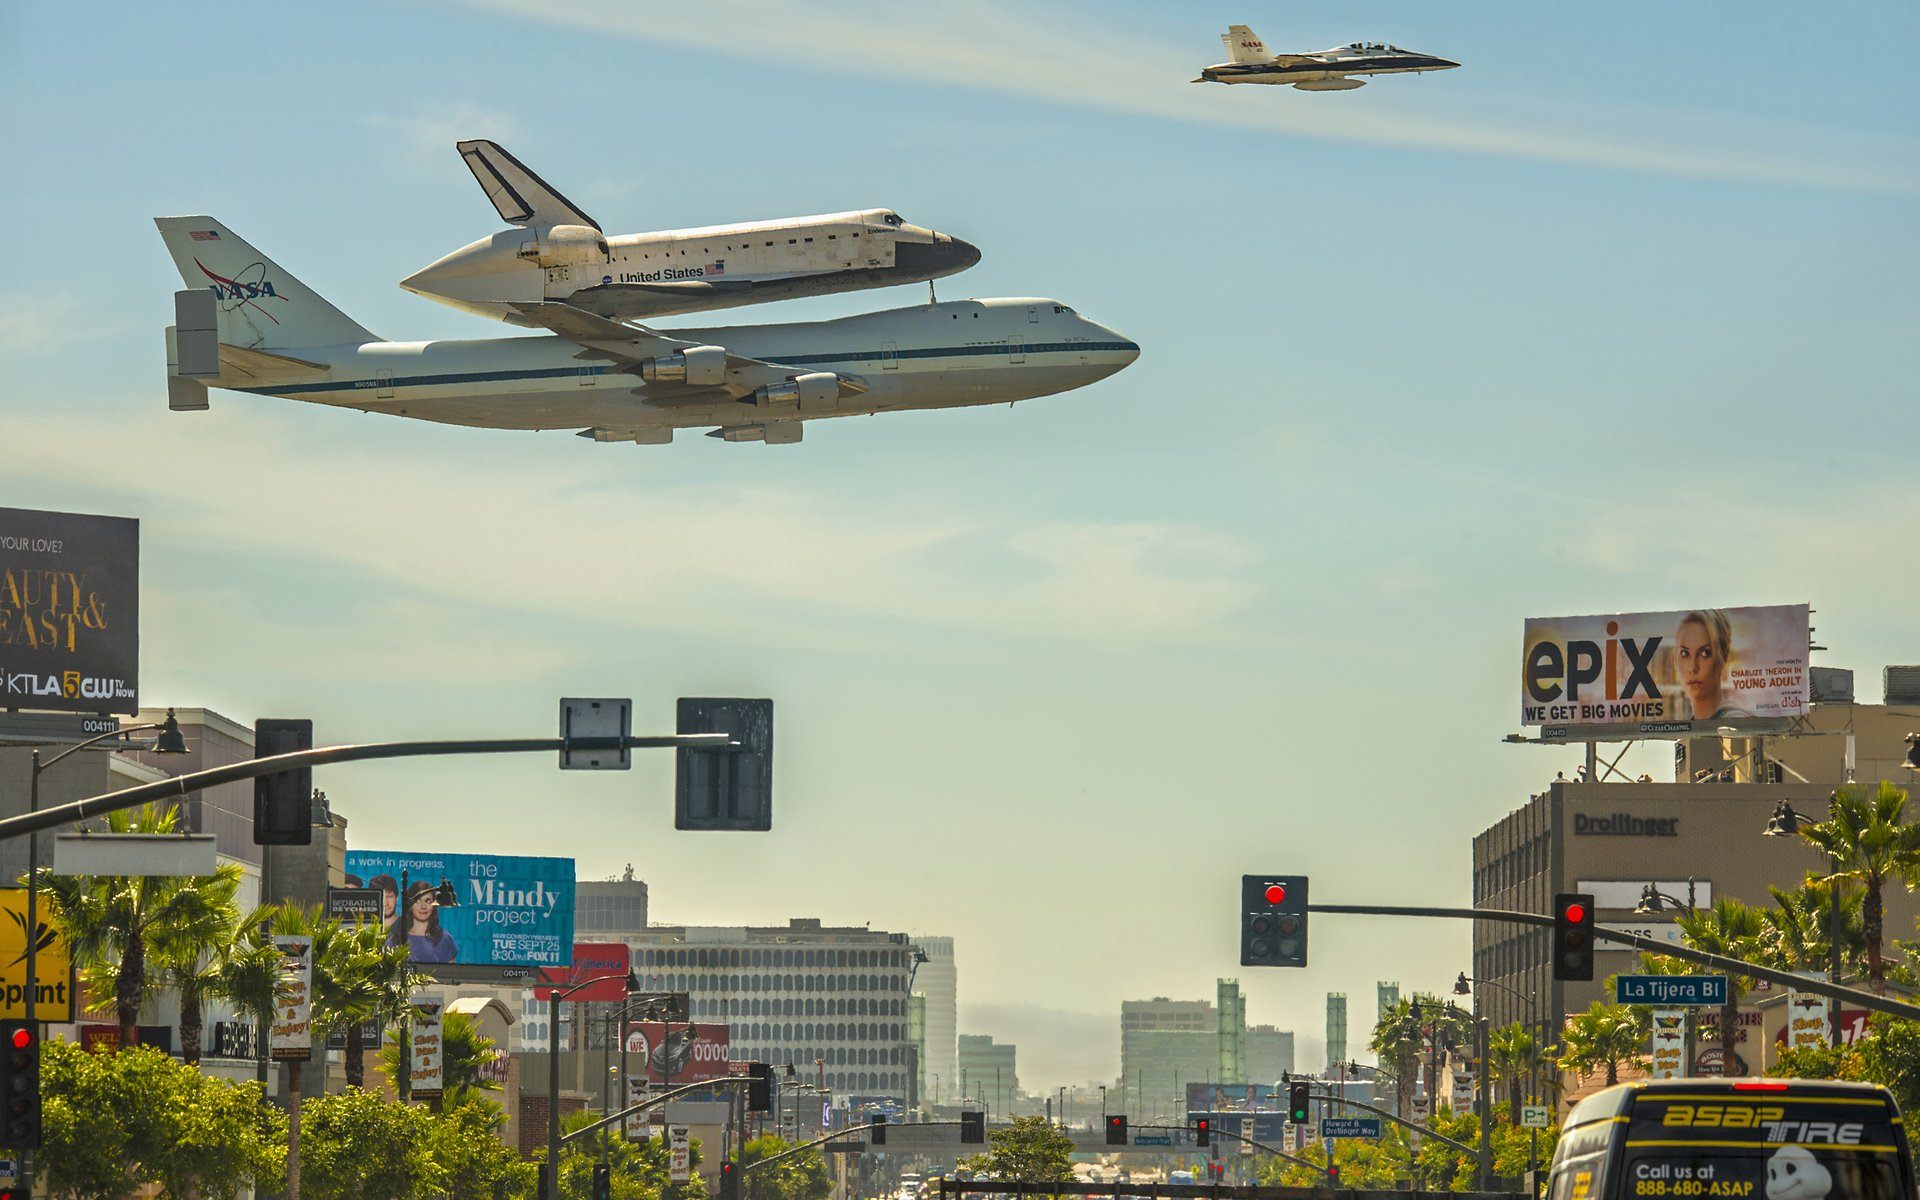 Vehicles - Space Shuttle Endeavour  Shuttle Airplane NASA Aircraft Jet Space Shuttle Wallpaper